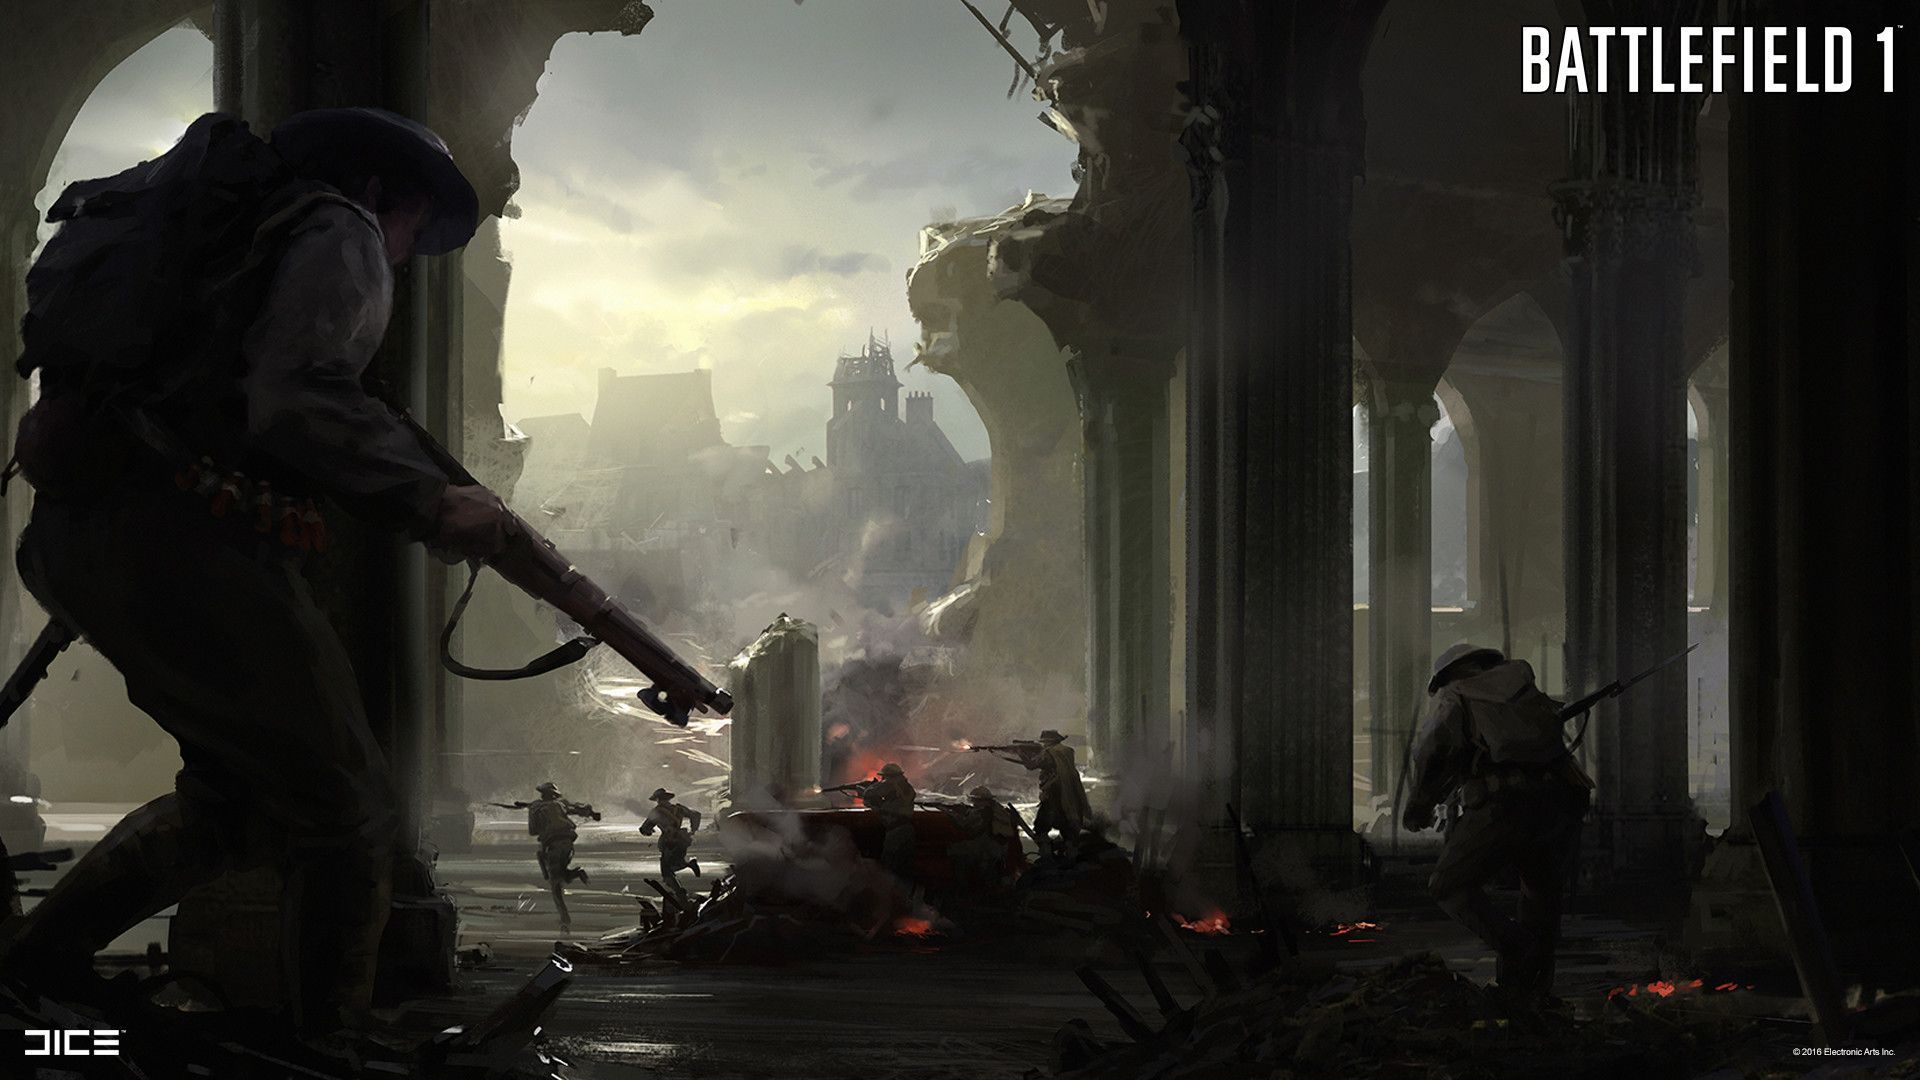 The Art Of Battlefield 1 With Images Battlefield 1